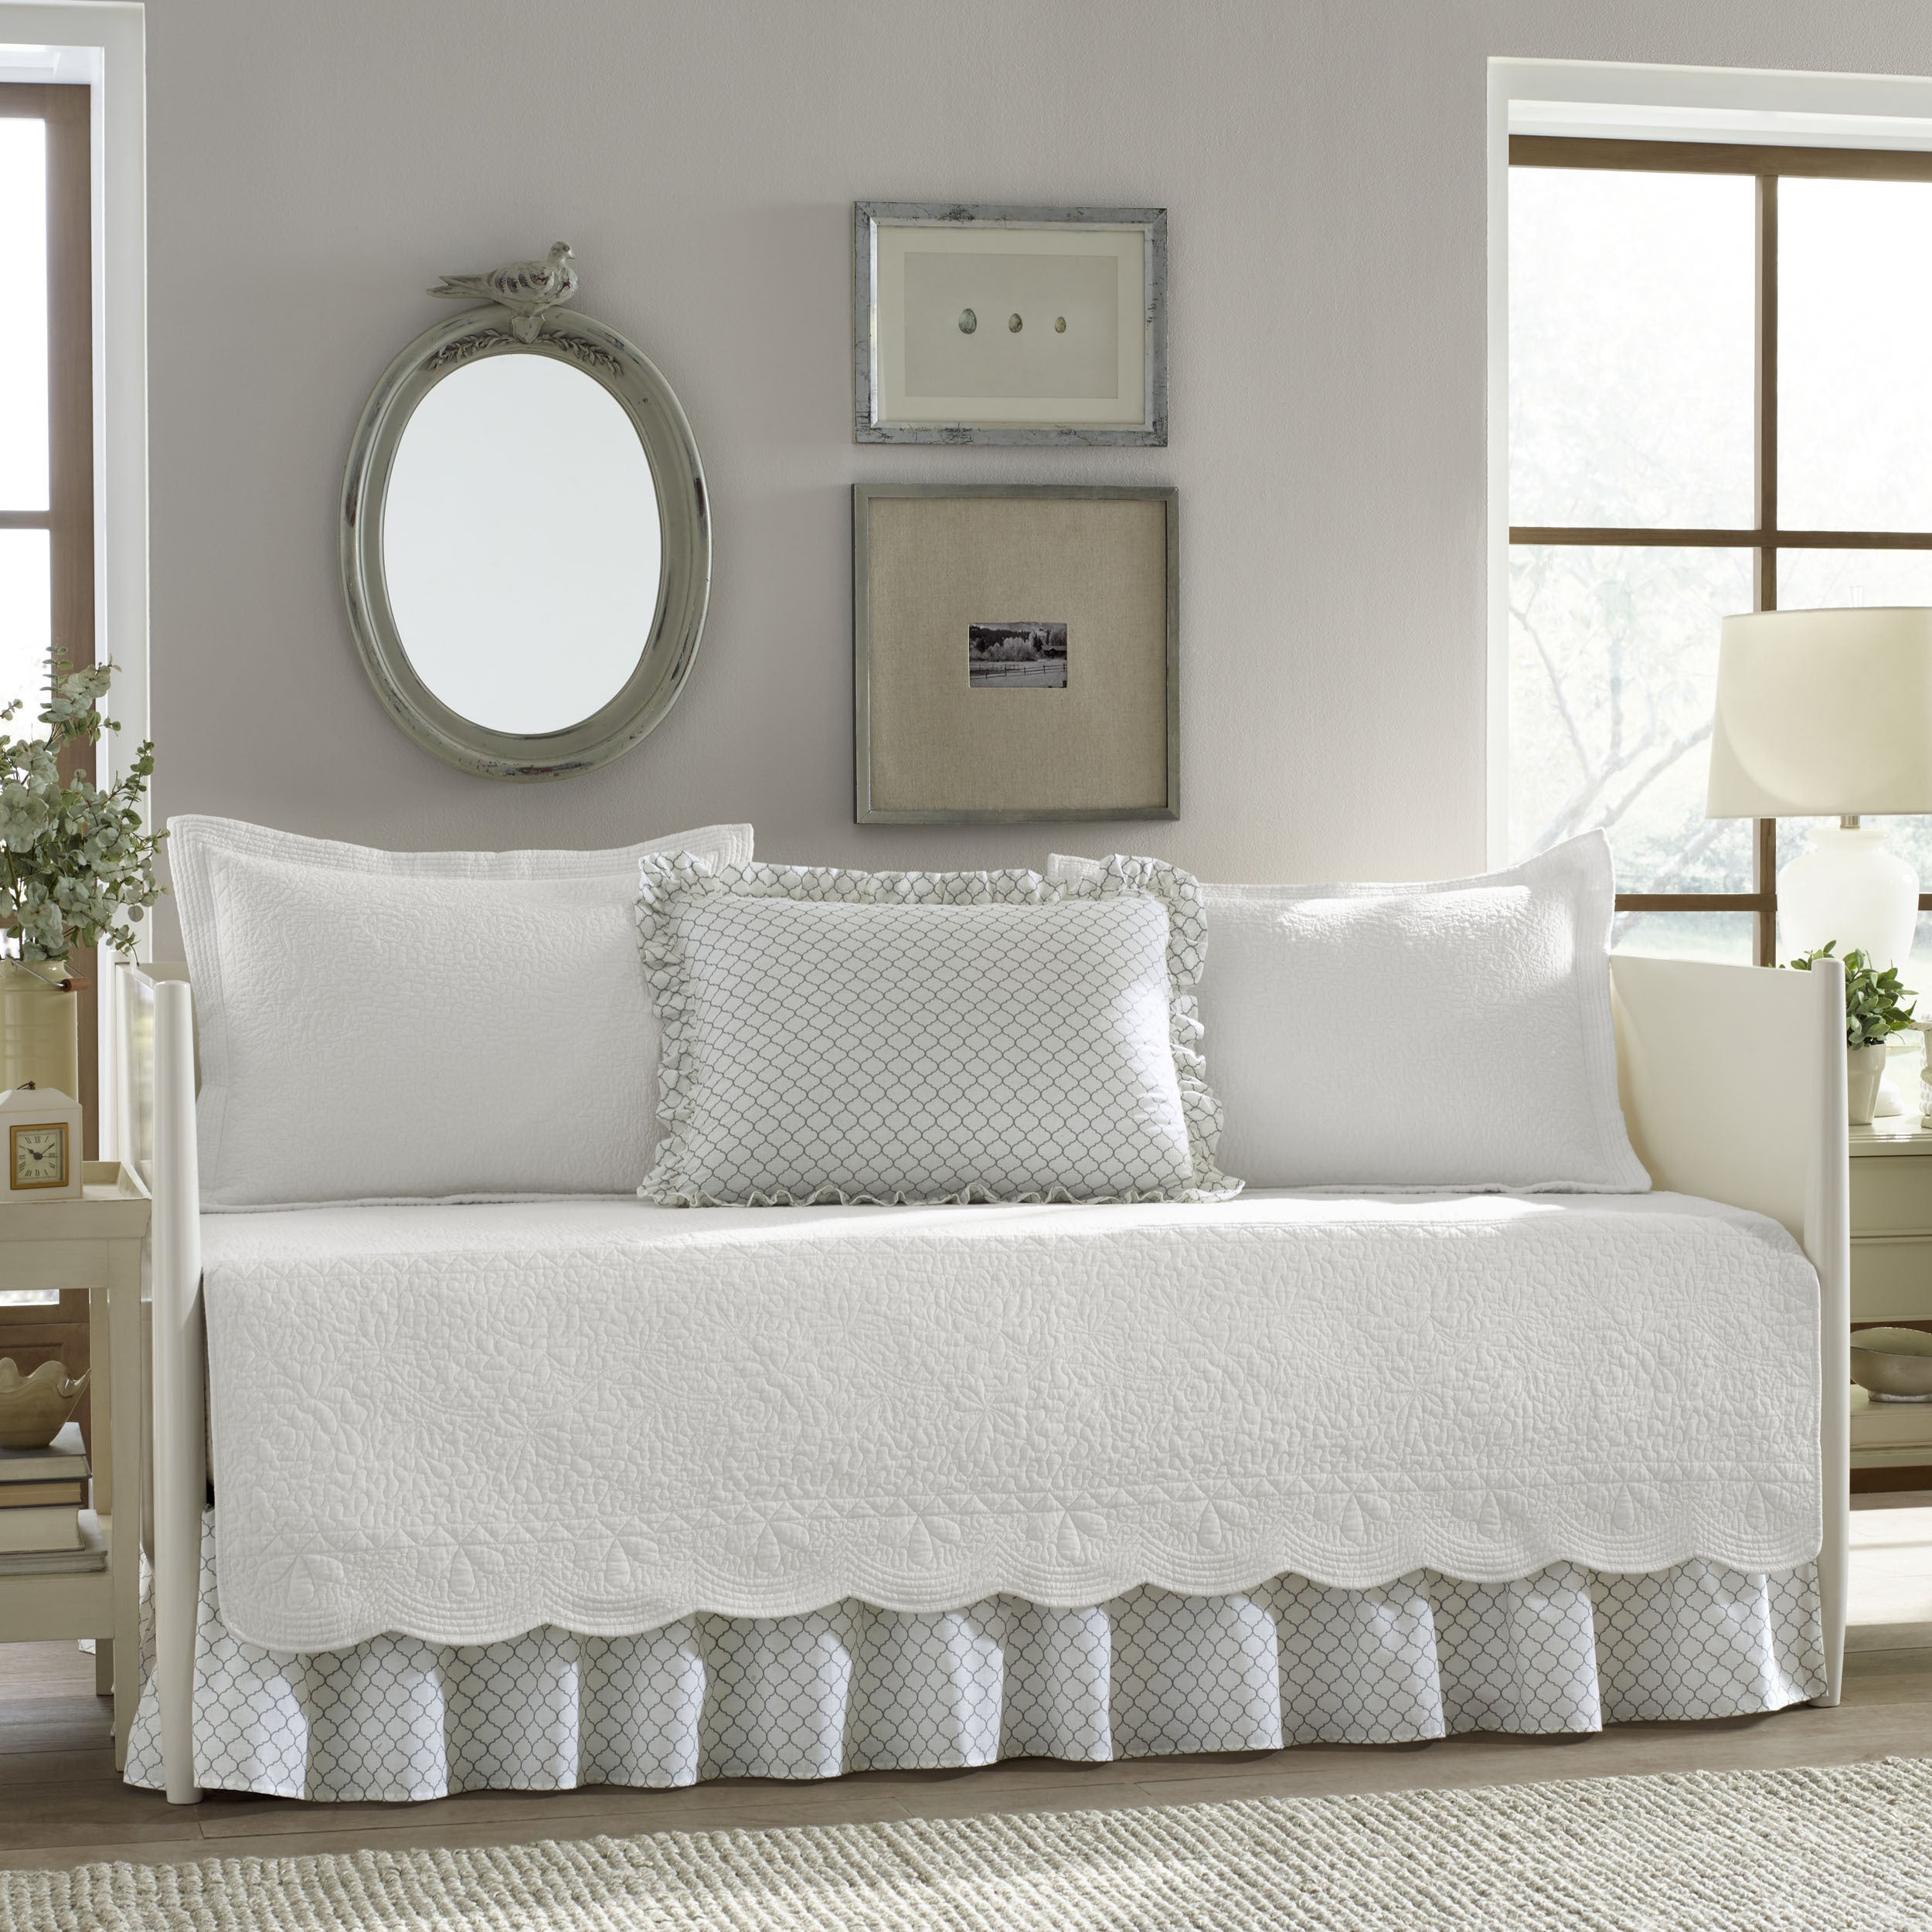 Stone Cottage Trellis White 5-Piece Daybed Cover Set (Twi...